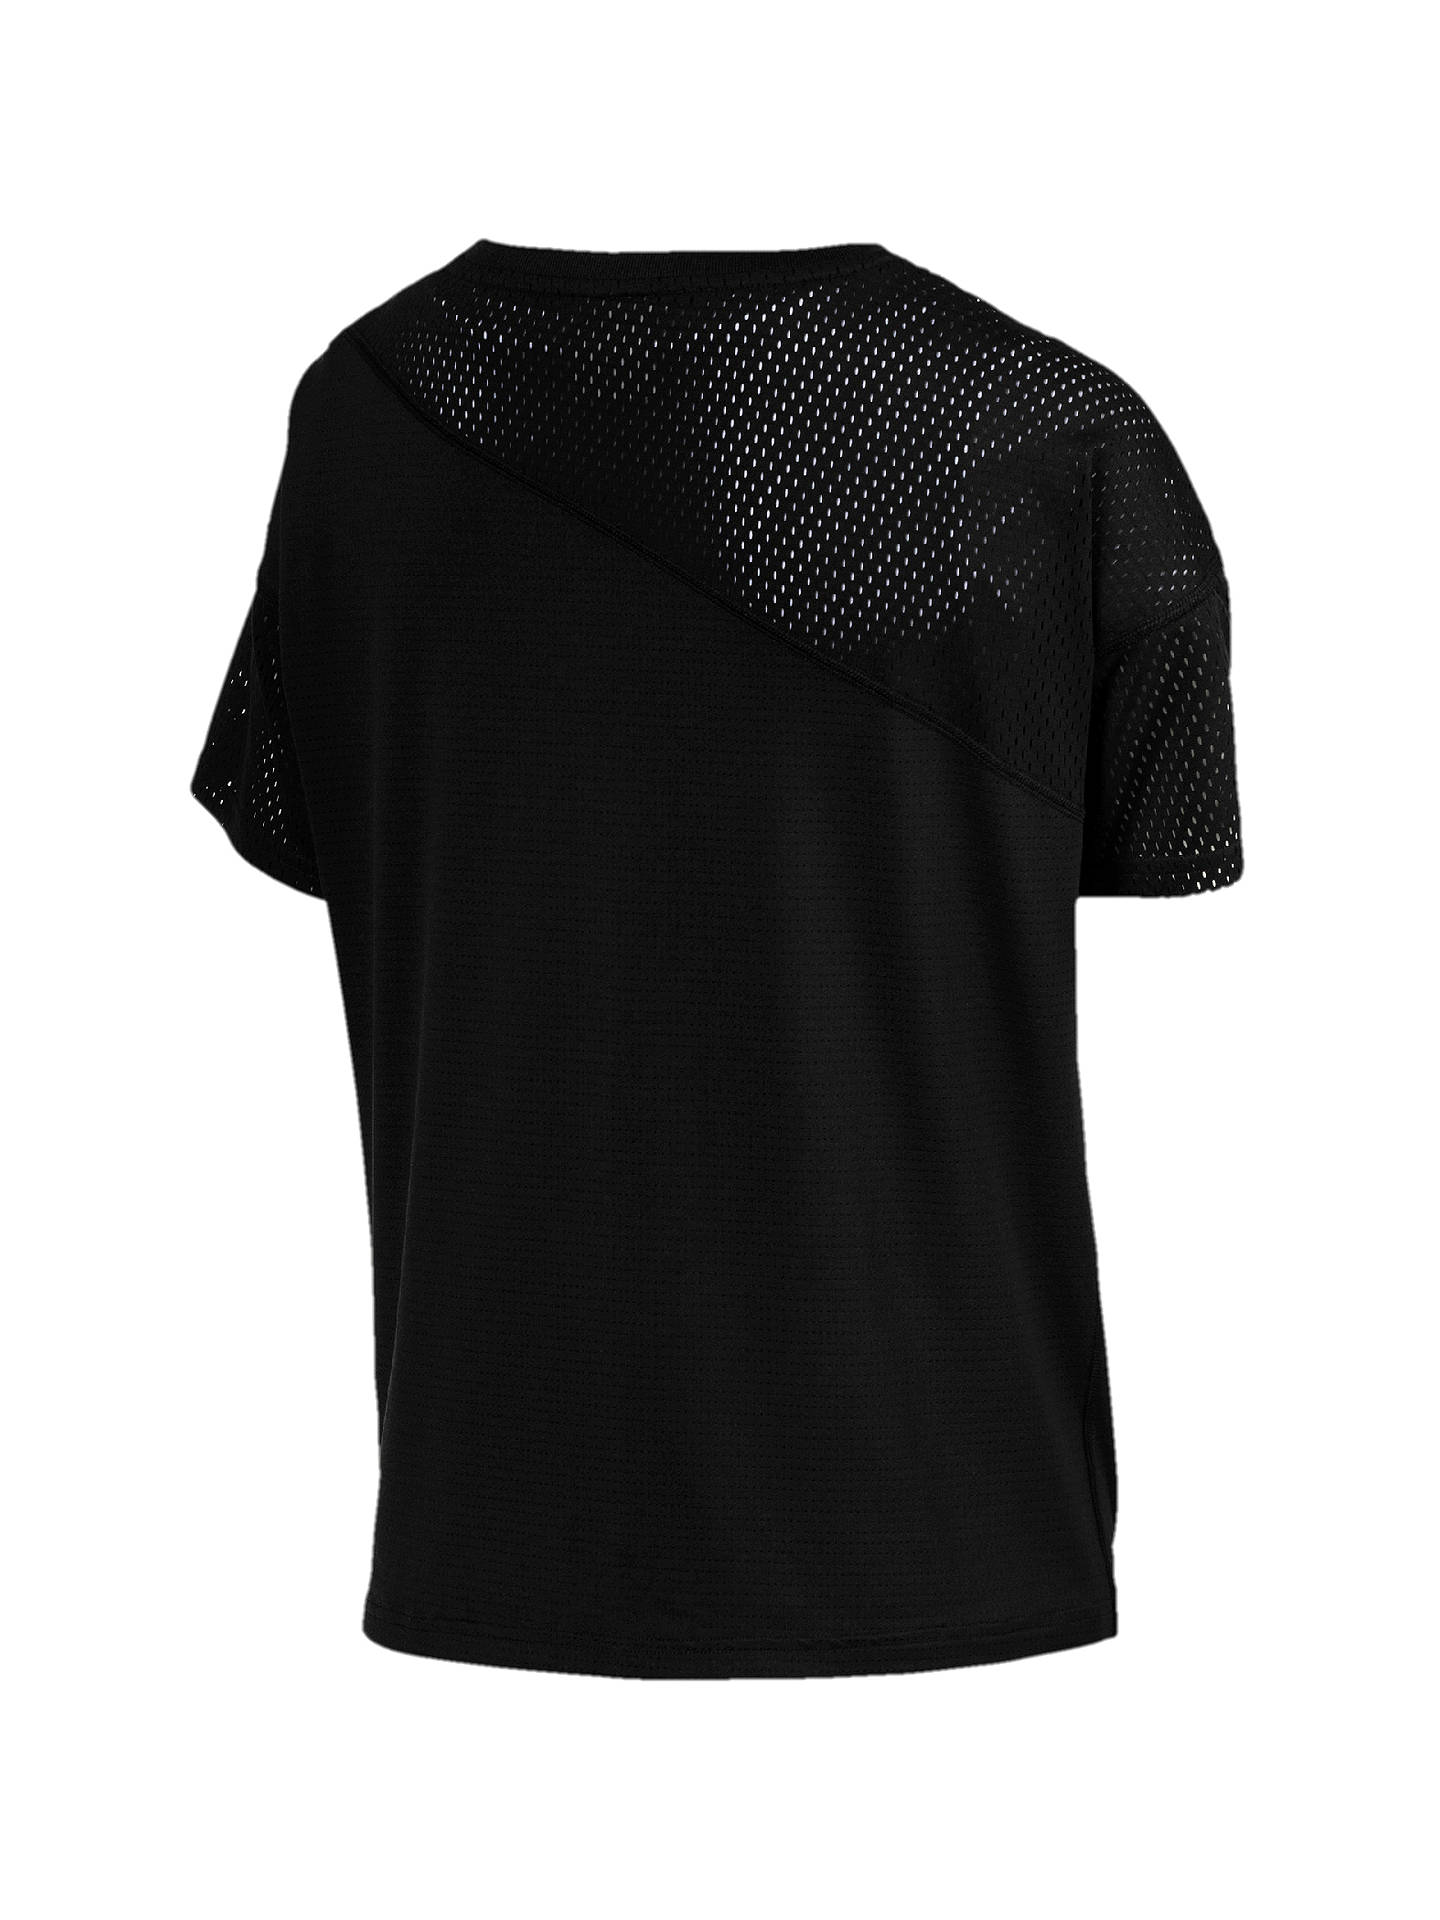 BuyPUMA Blocked Mesh Training T-Shirt, Black, XS Online at johnlewis.com